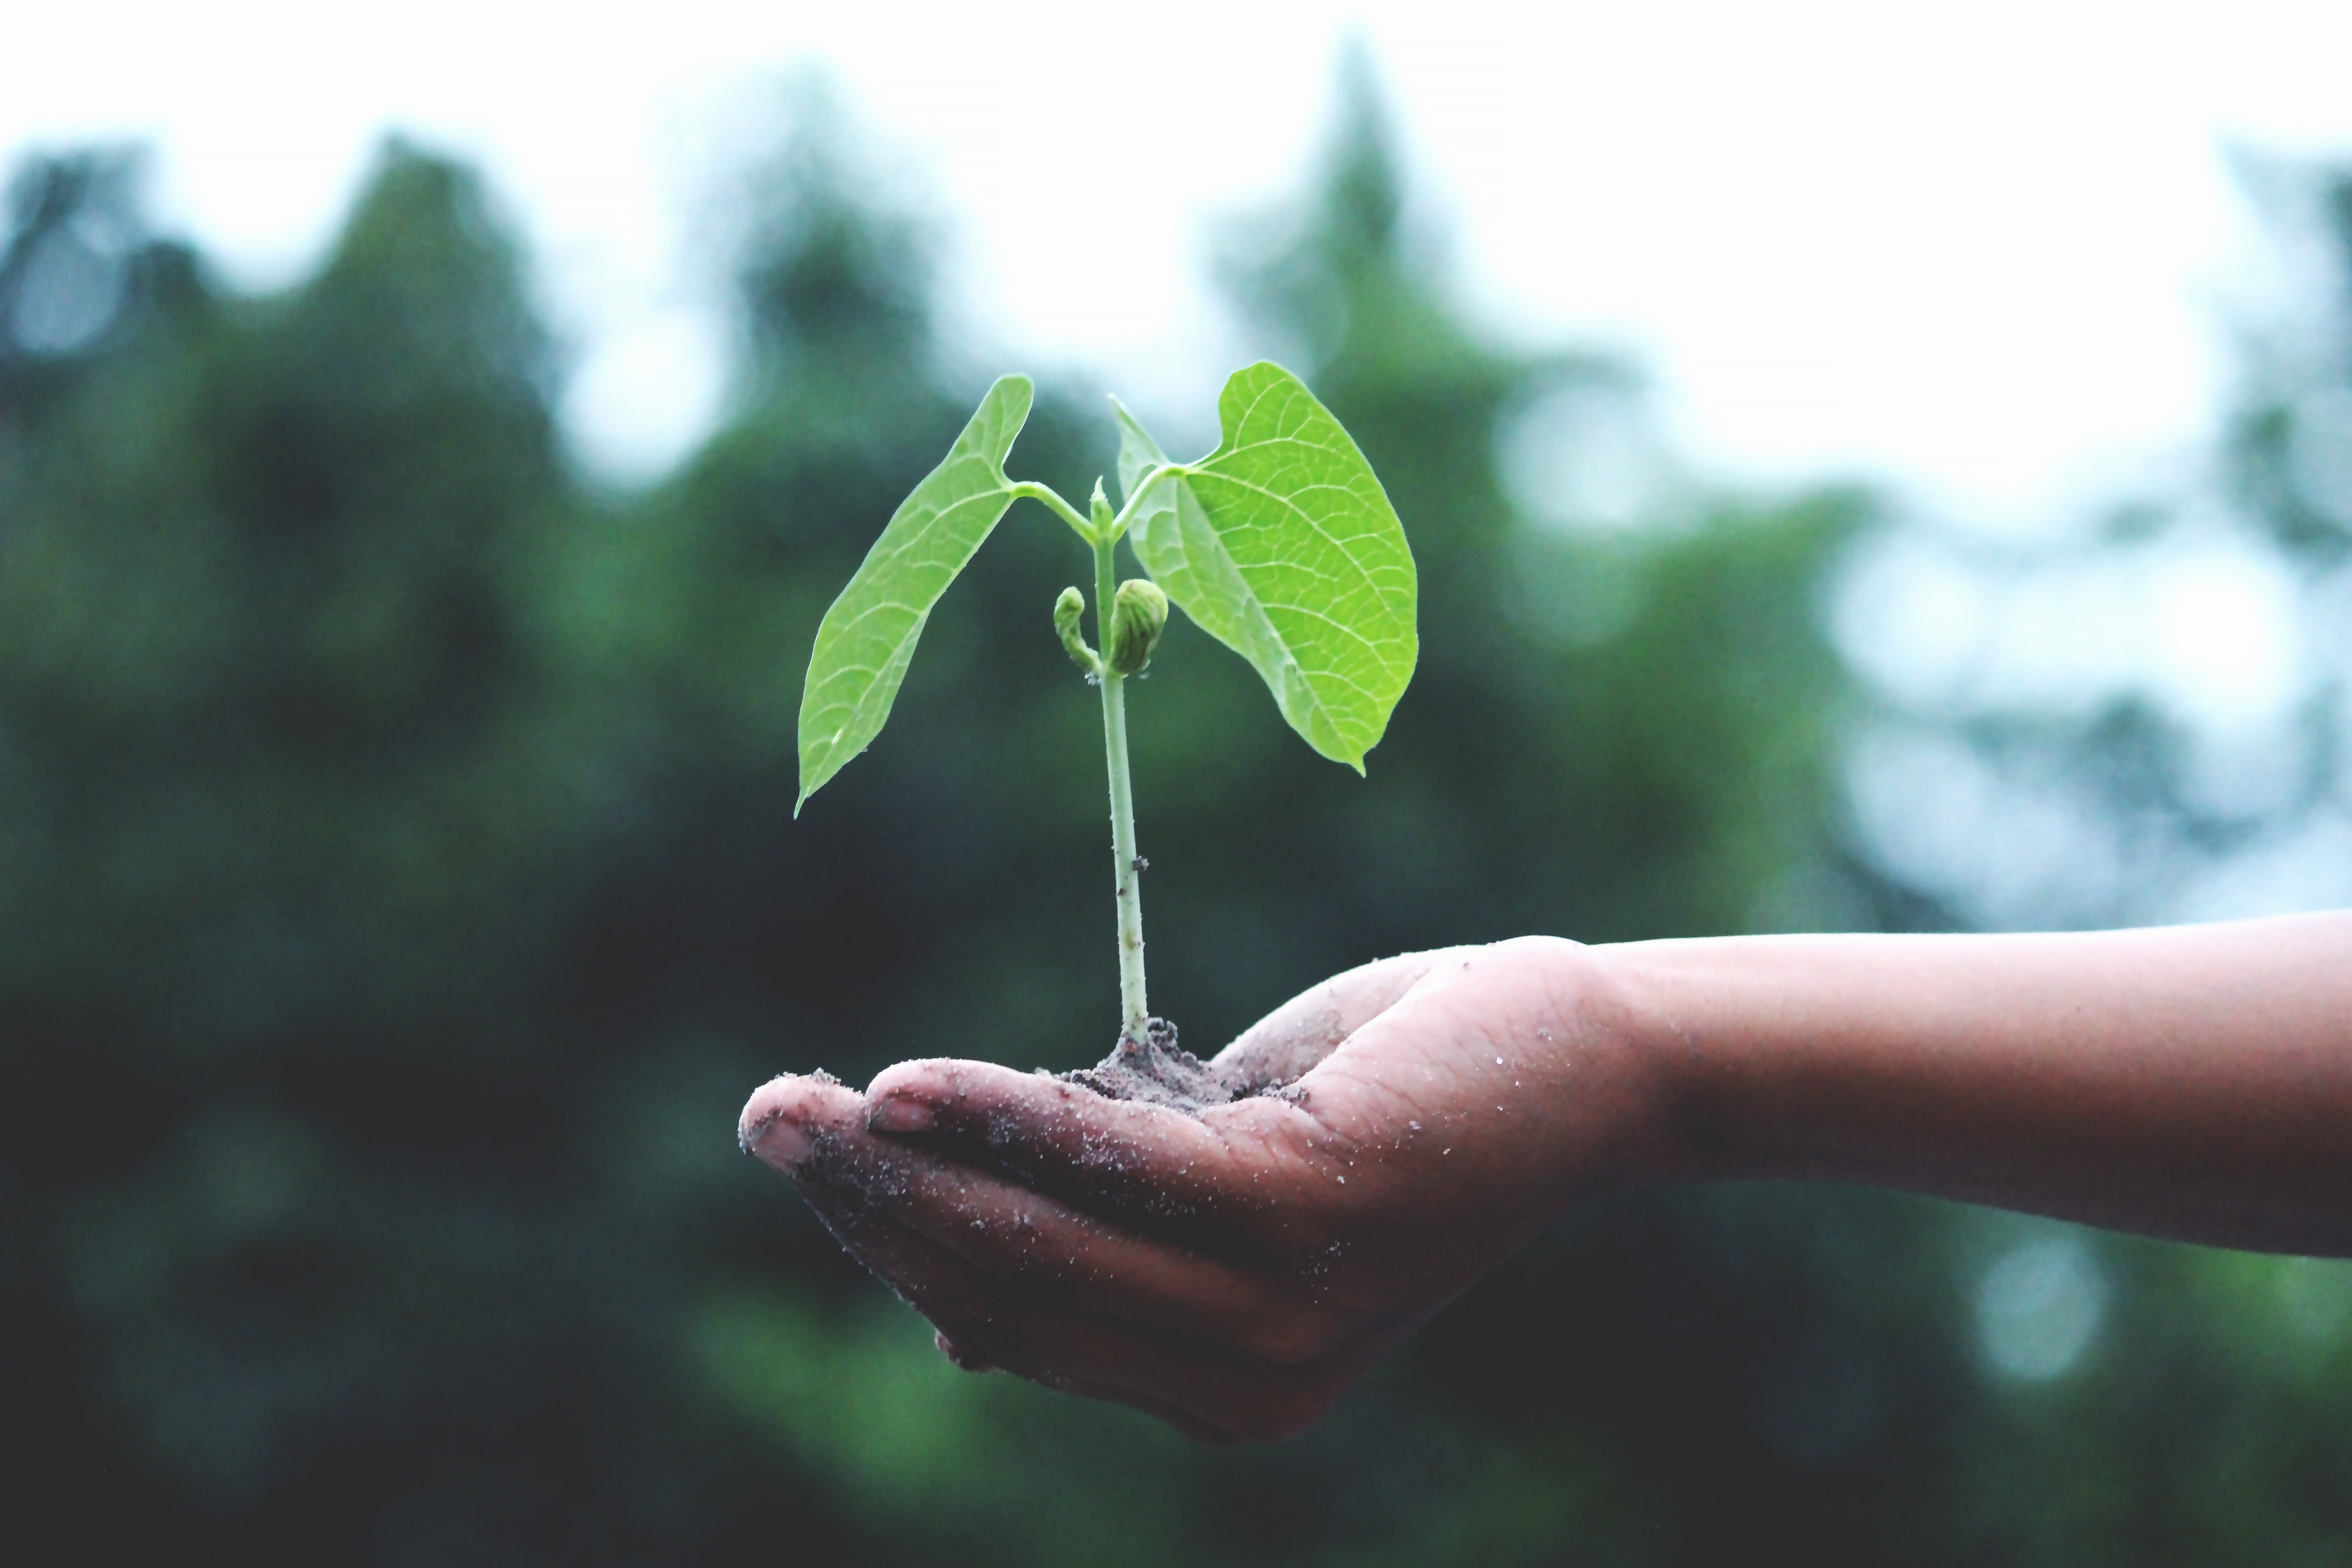 hand holding a green plant